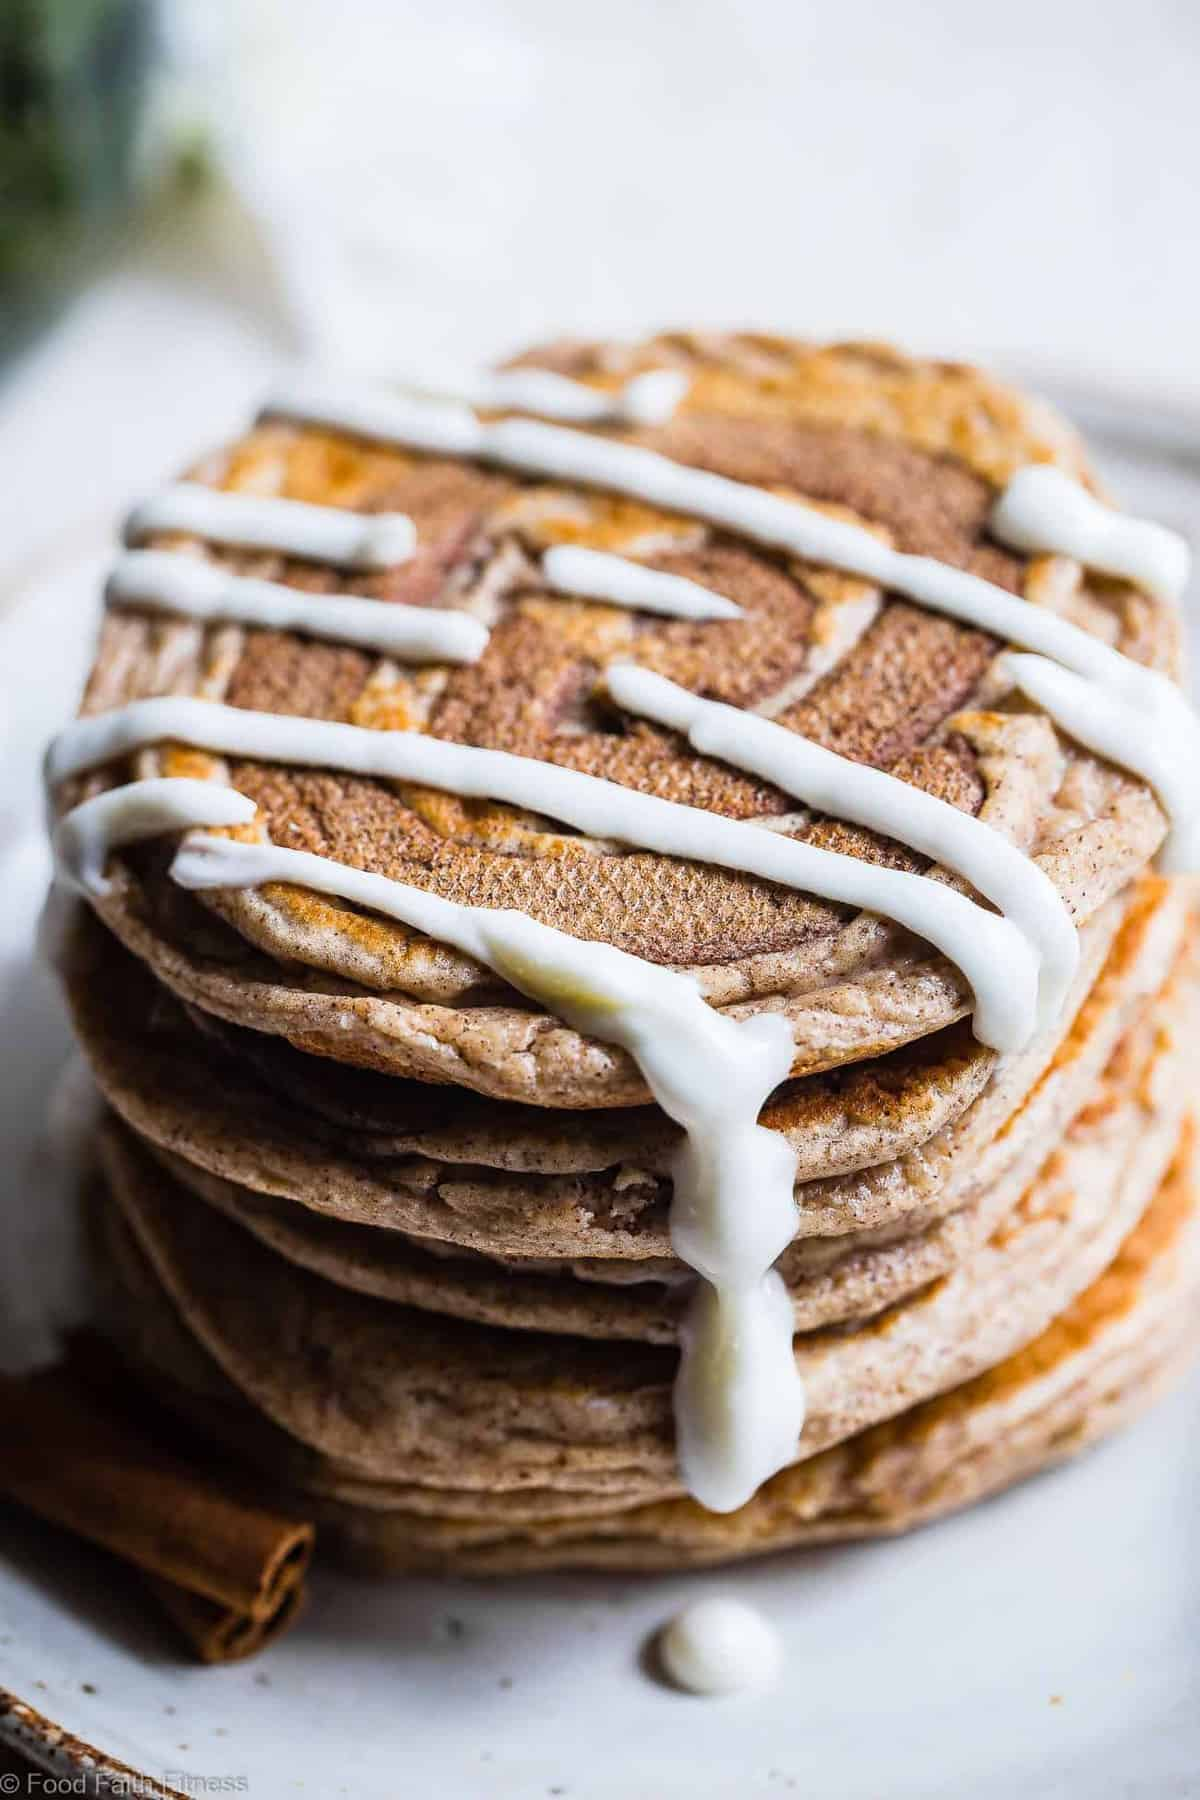 Cinnamon Roll Keto Protein Pancakes - This EASY, low carb, gluten free protein pancakes recipe is going to be your new favorite breakfast! Great for kids and adults and packed with 23g of protein! Who doesn't want to wake up to healthy cinnamon rolls?! | #Foodfaithfitness | #Keto #Lowcarb #Glutenfree #Healthy #Pancakes